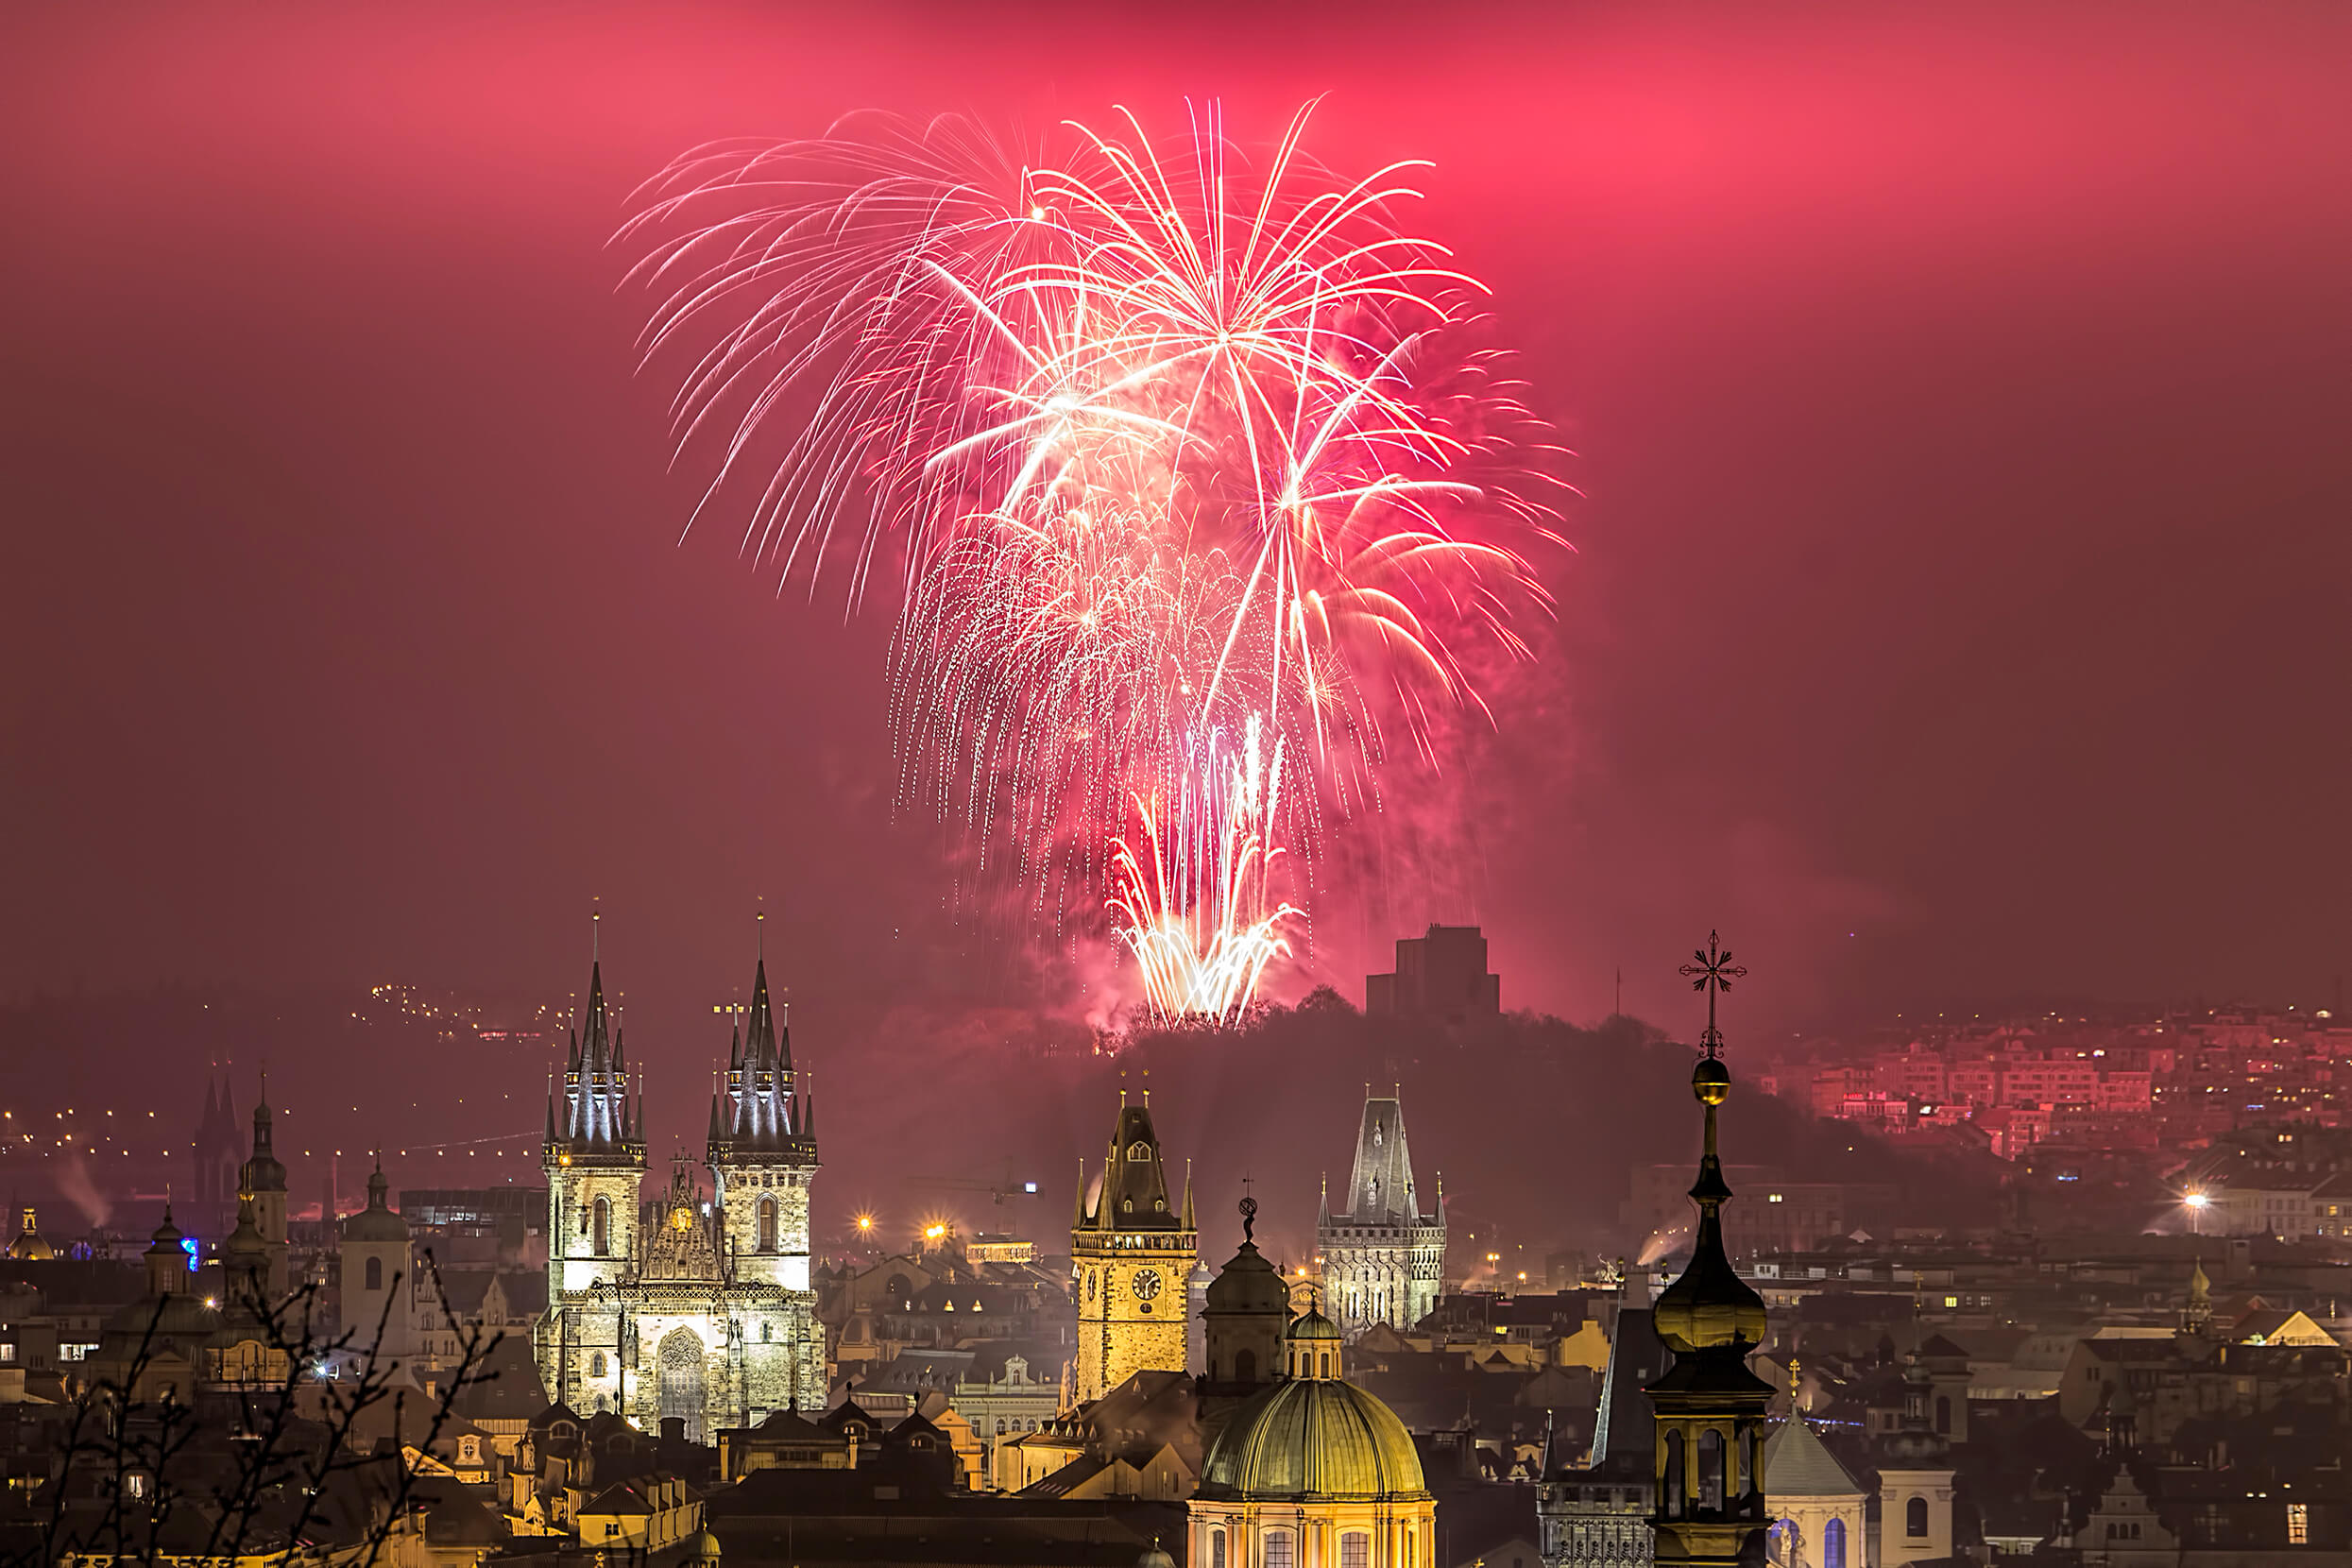 Prague_New_Year_2016_fireworks._Happy_New_Year!_(23741249829).jpg